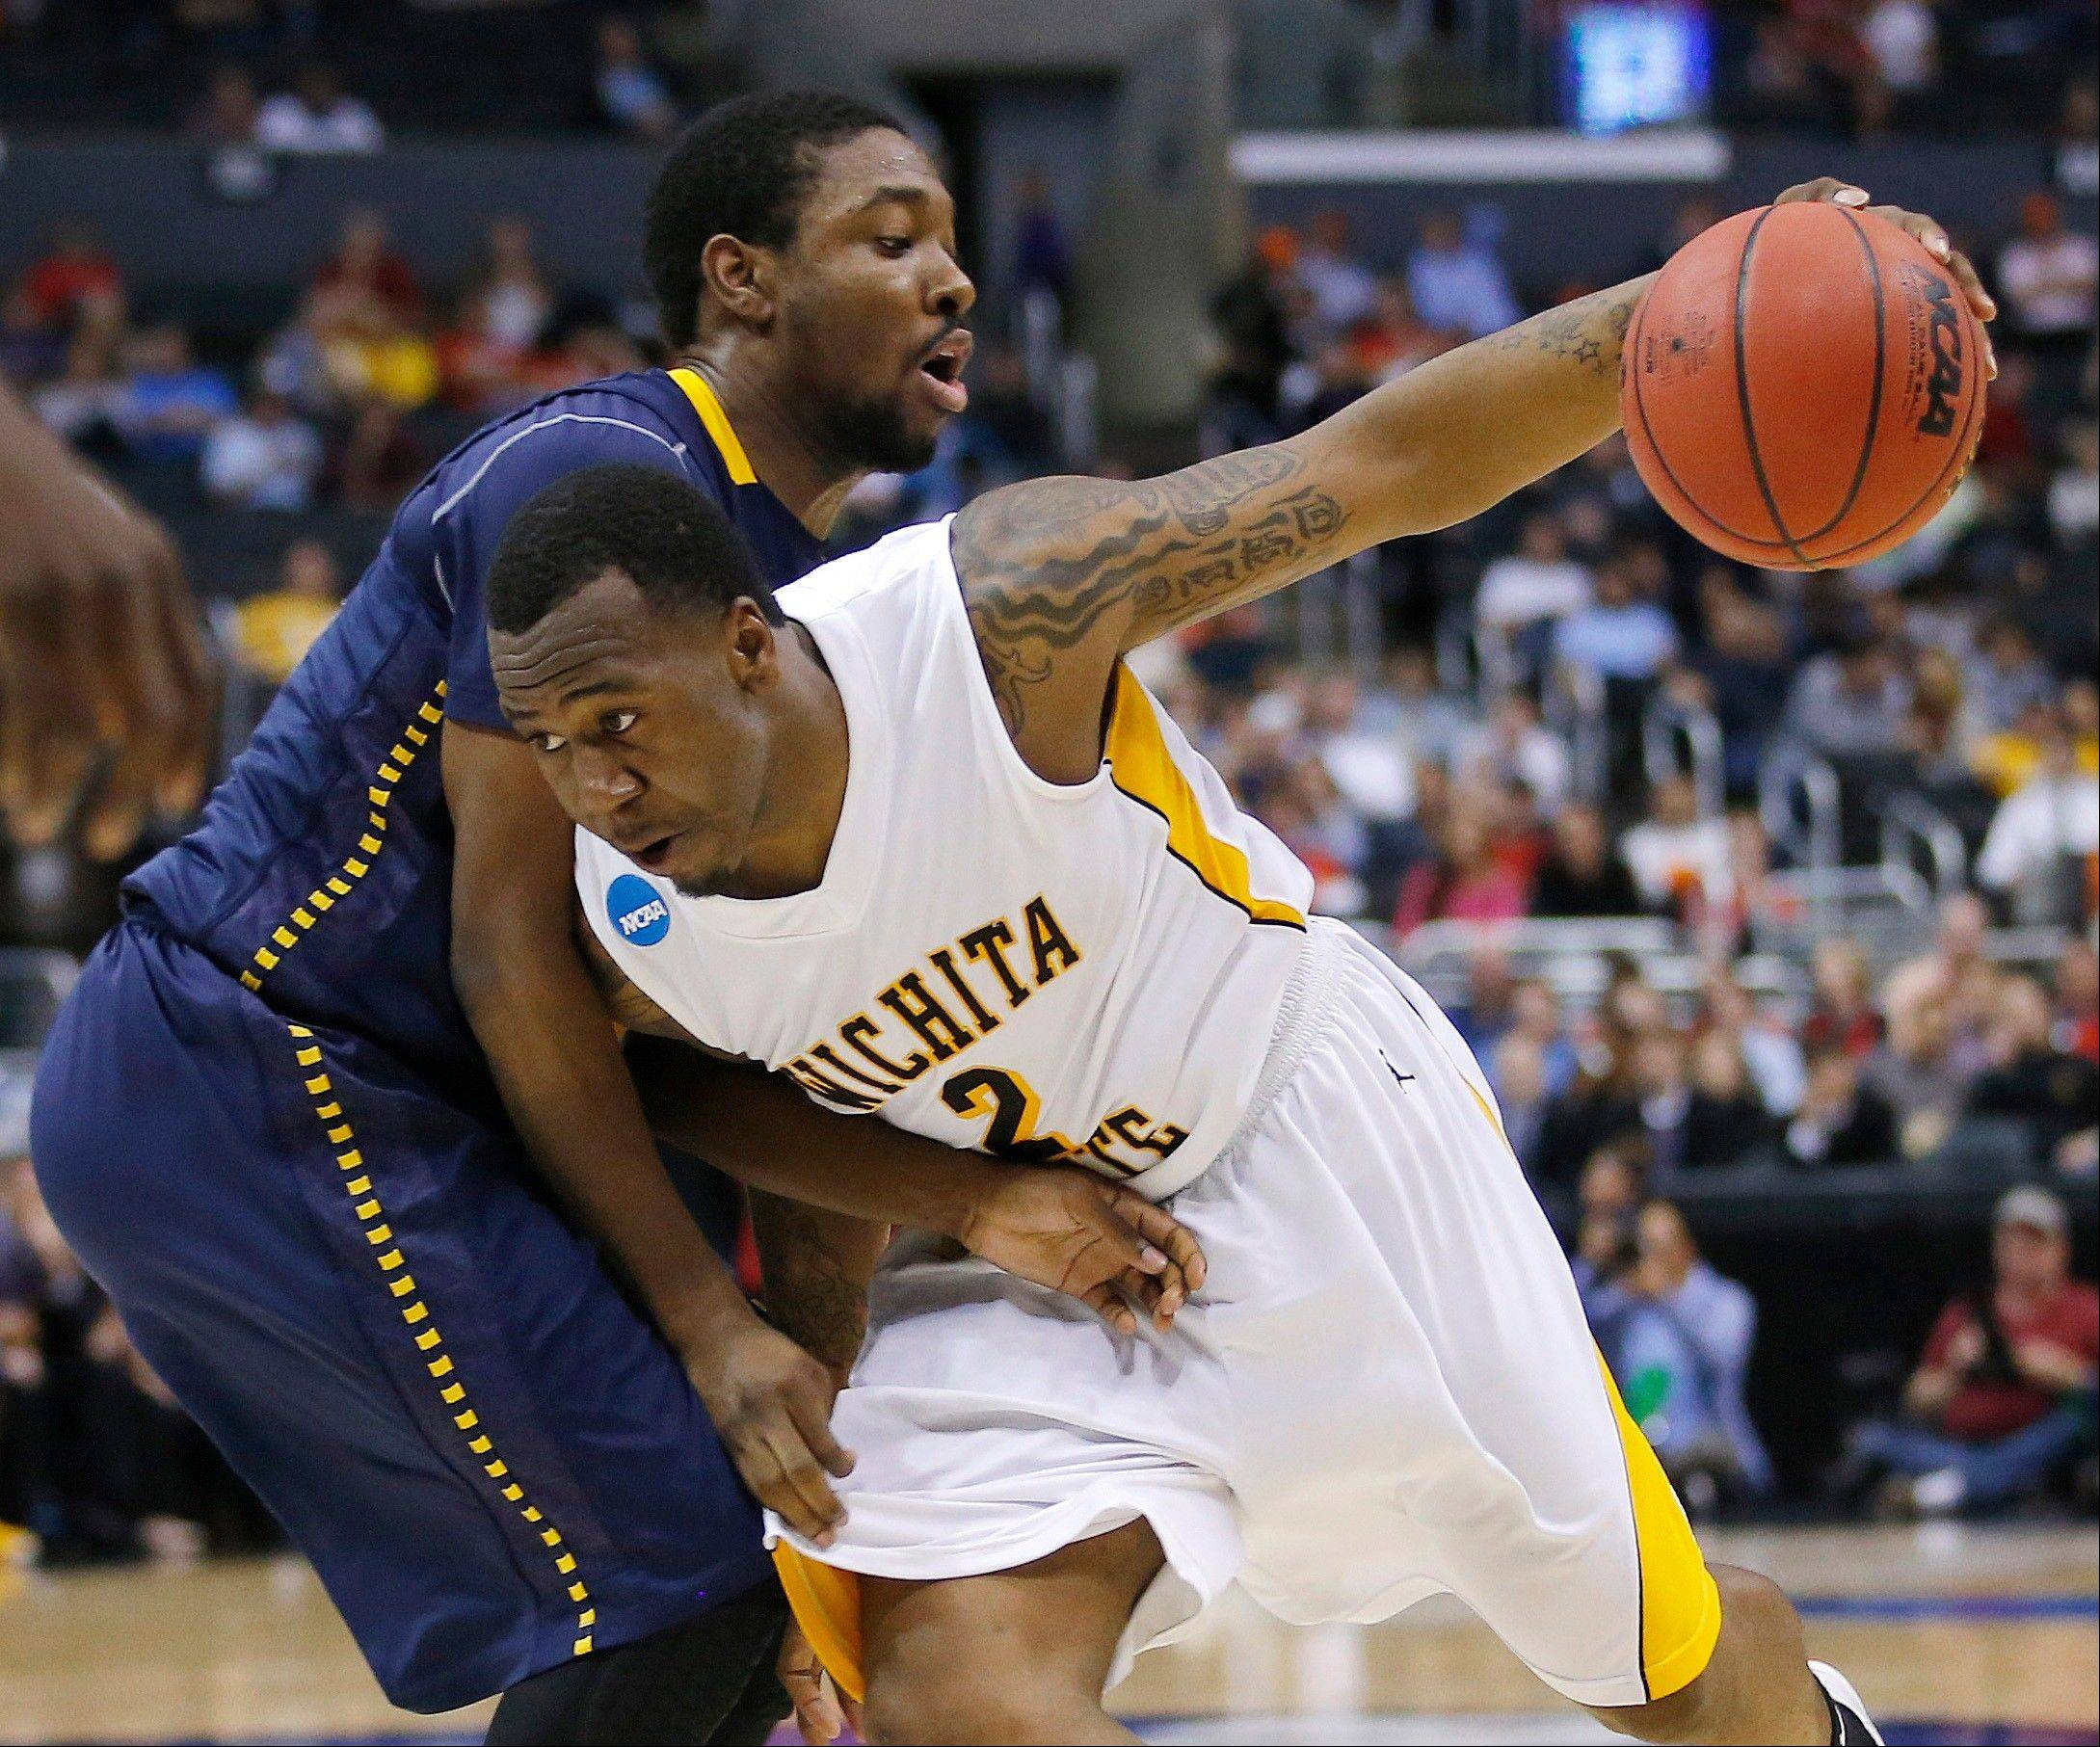 La Salle guard Sam Mills, left, defends Wichita State guard Malcolm Armstead during the second half of a West Regional semifinal in the NCAA men's college basketball tournament, Thursday, March 28, 2013, in Los Angeles. (AP Photo/Jae C. Hong)